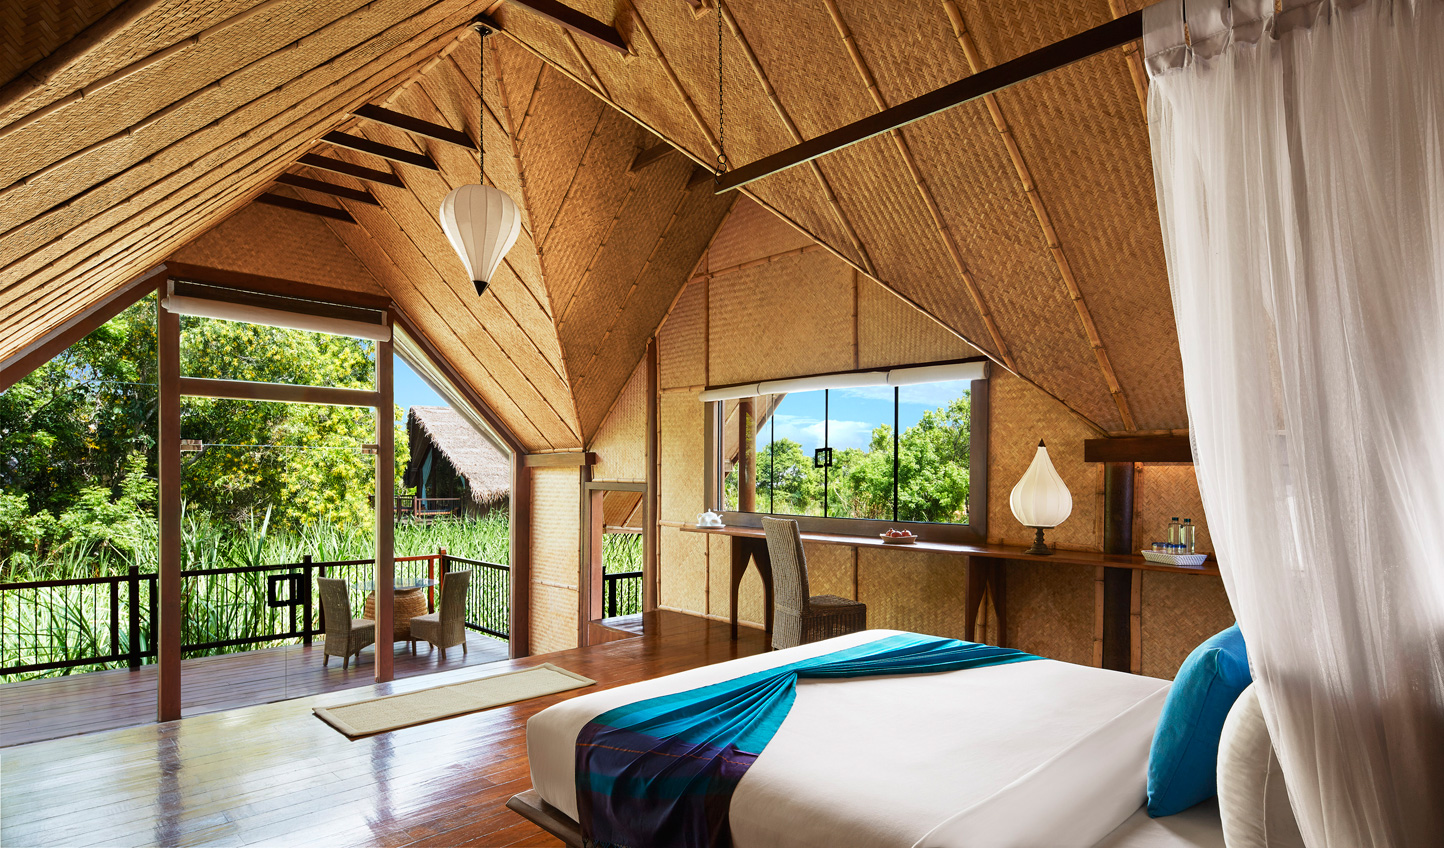 Wake up to peaceful views of the paddy fields